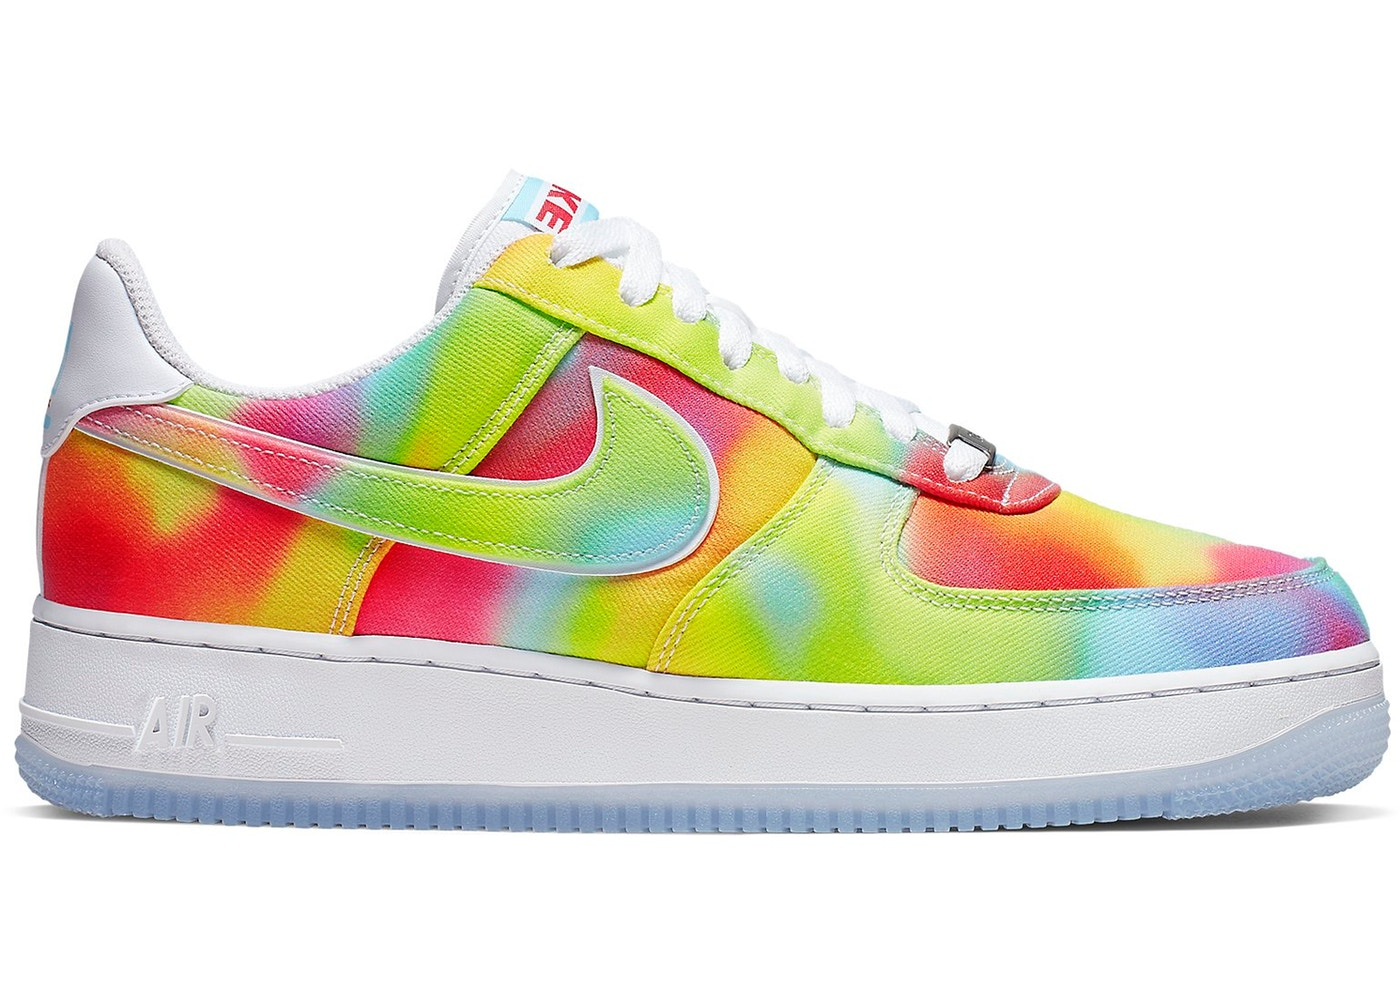 46a7a7e1 Air Force 1 Low Tie Dye Chicago - CK0838-100